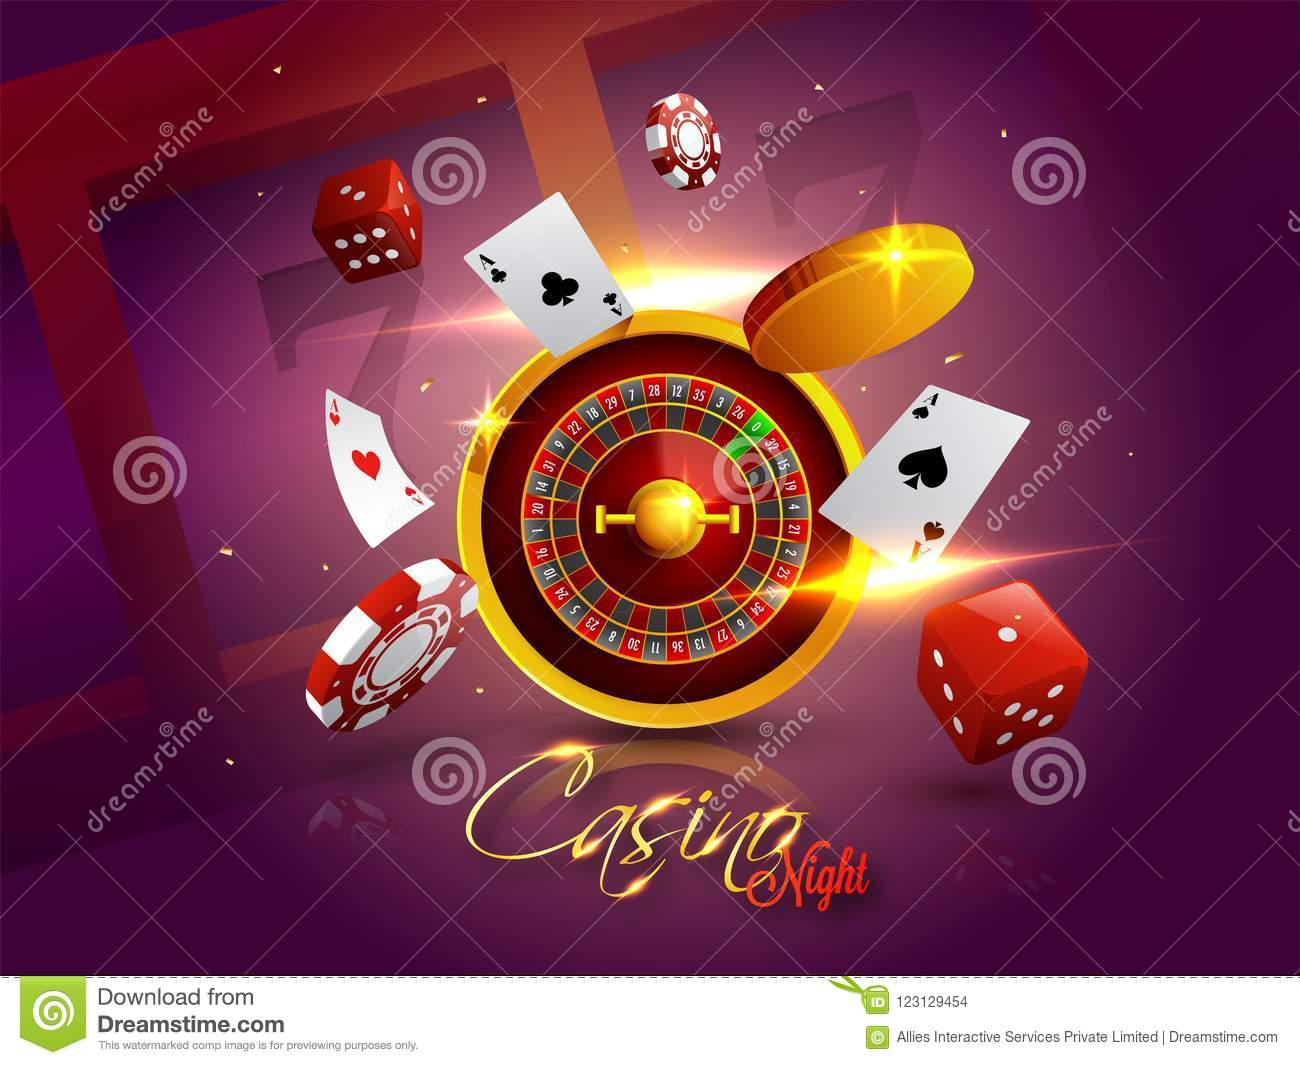 Casino Night background with 3D Chips, Coins, Dice, Roulette.